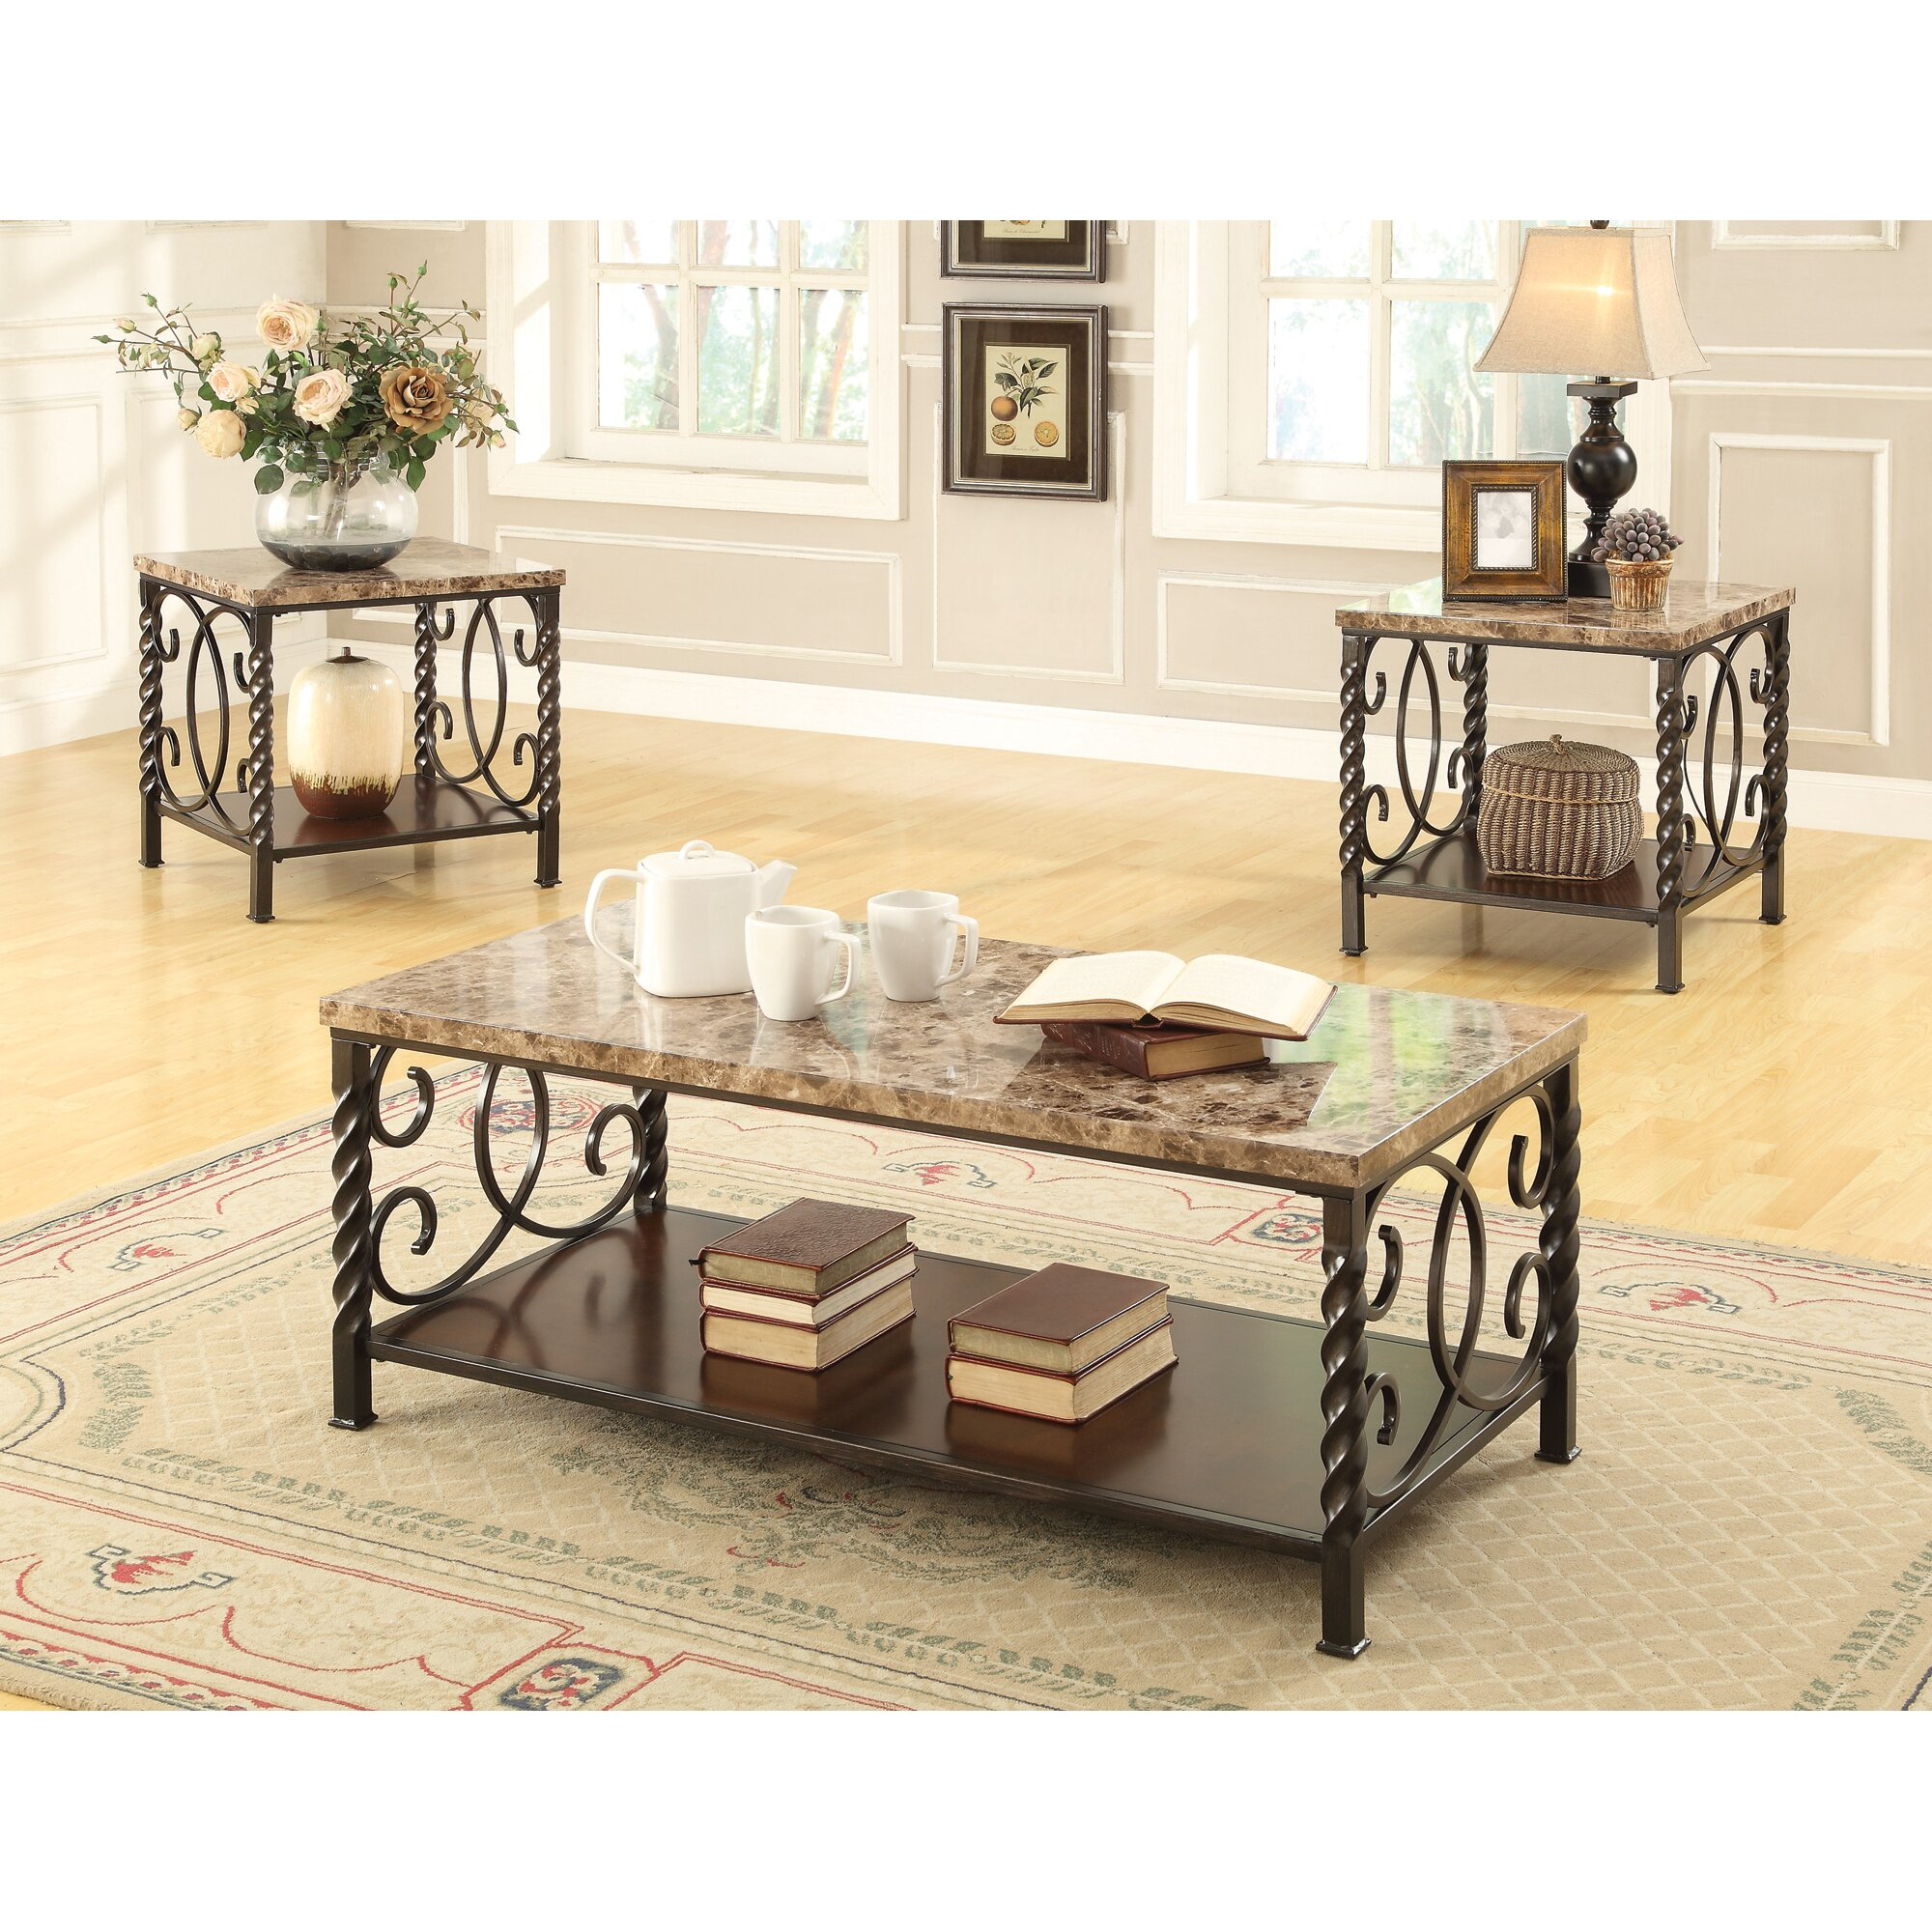 Veropeso 3 Piece Coffee Table Set: Wildon Home ® 3 Piece Coffee Table Set & Reviews